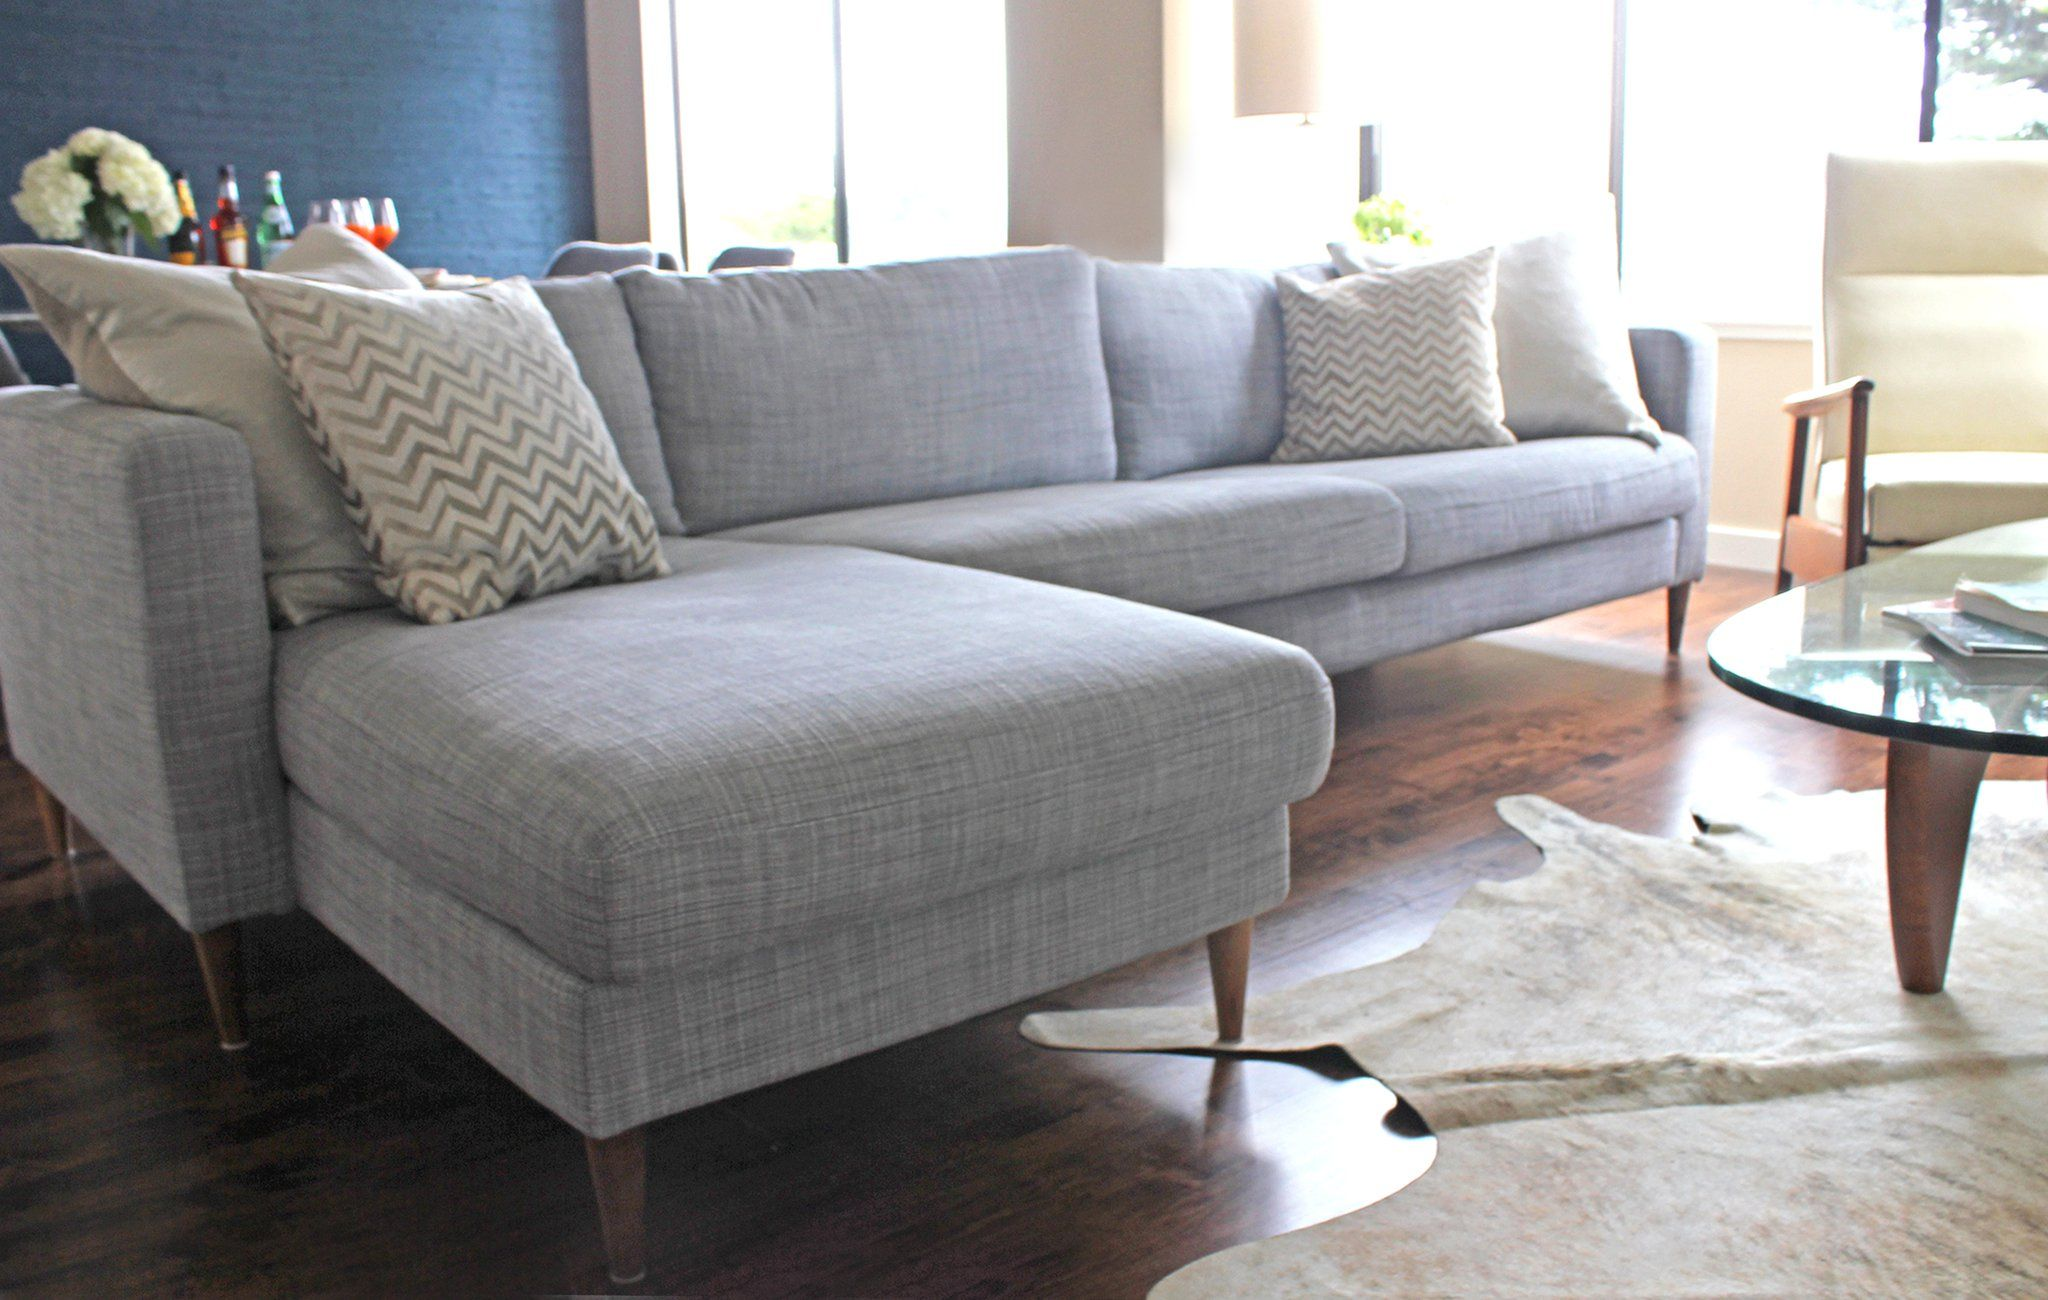 Terrific Dress Up An Ikea Sofa By Replacing The Legs Ikea Couch Pdpeps Interior Chair Design Pdpepsorg